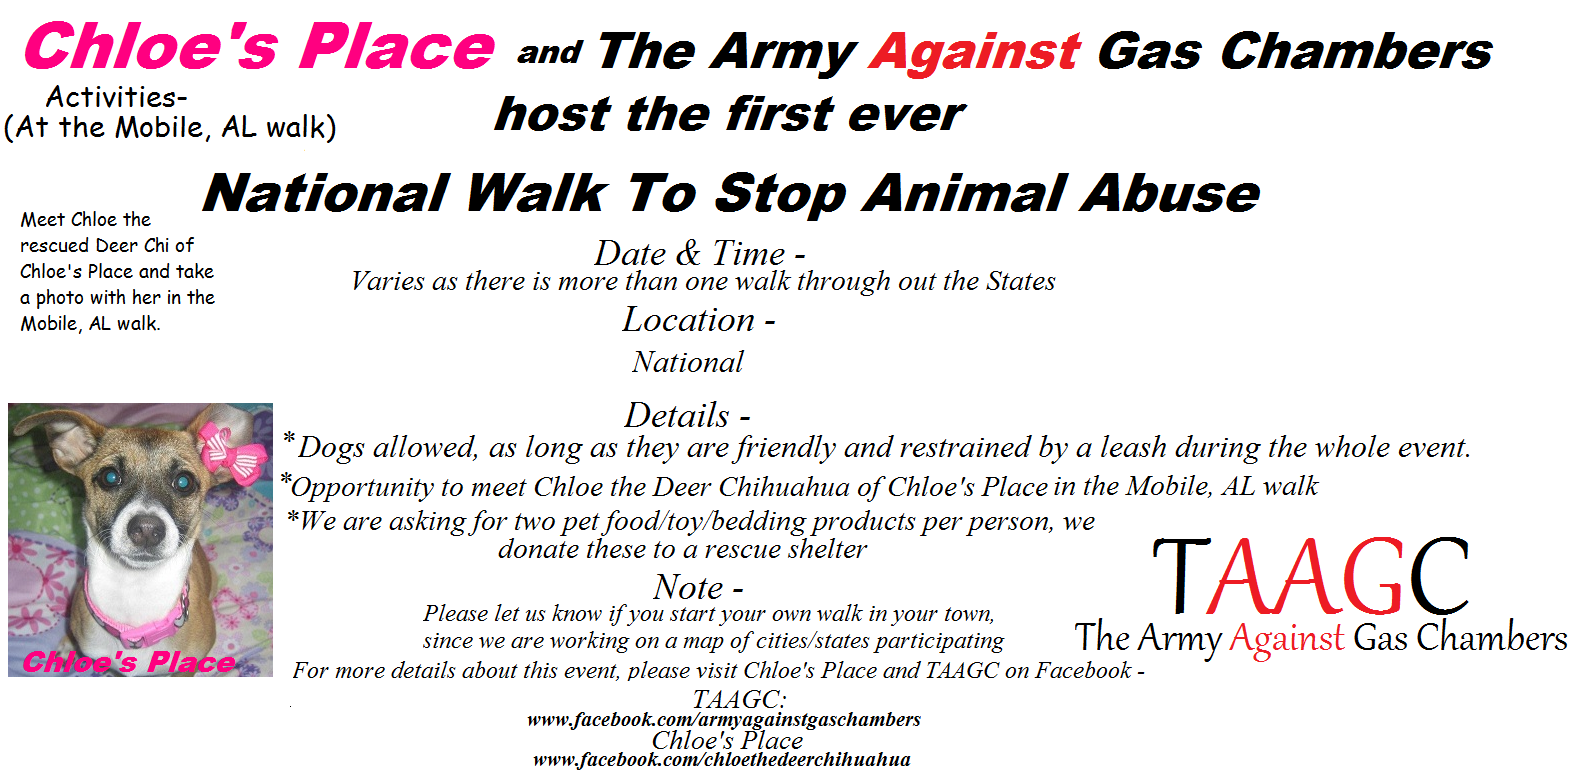 Animal Shelter In Mobile Al : The army against gas chambers mobile alabama walk to